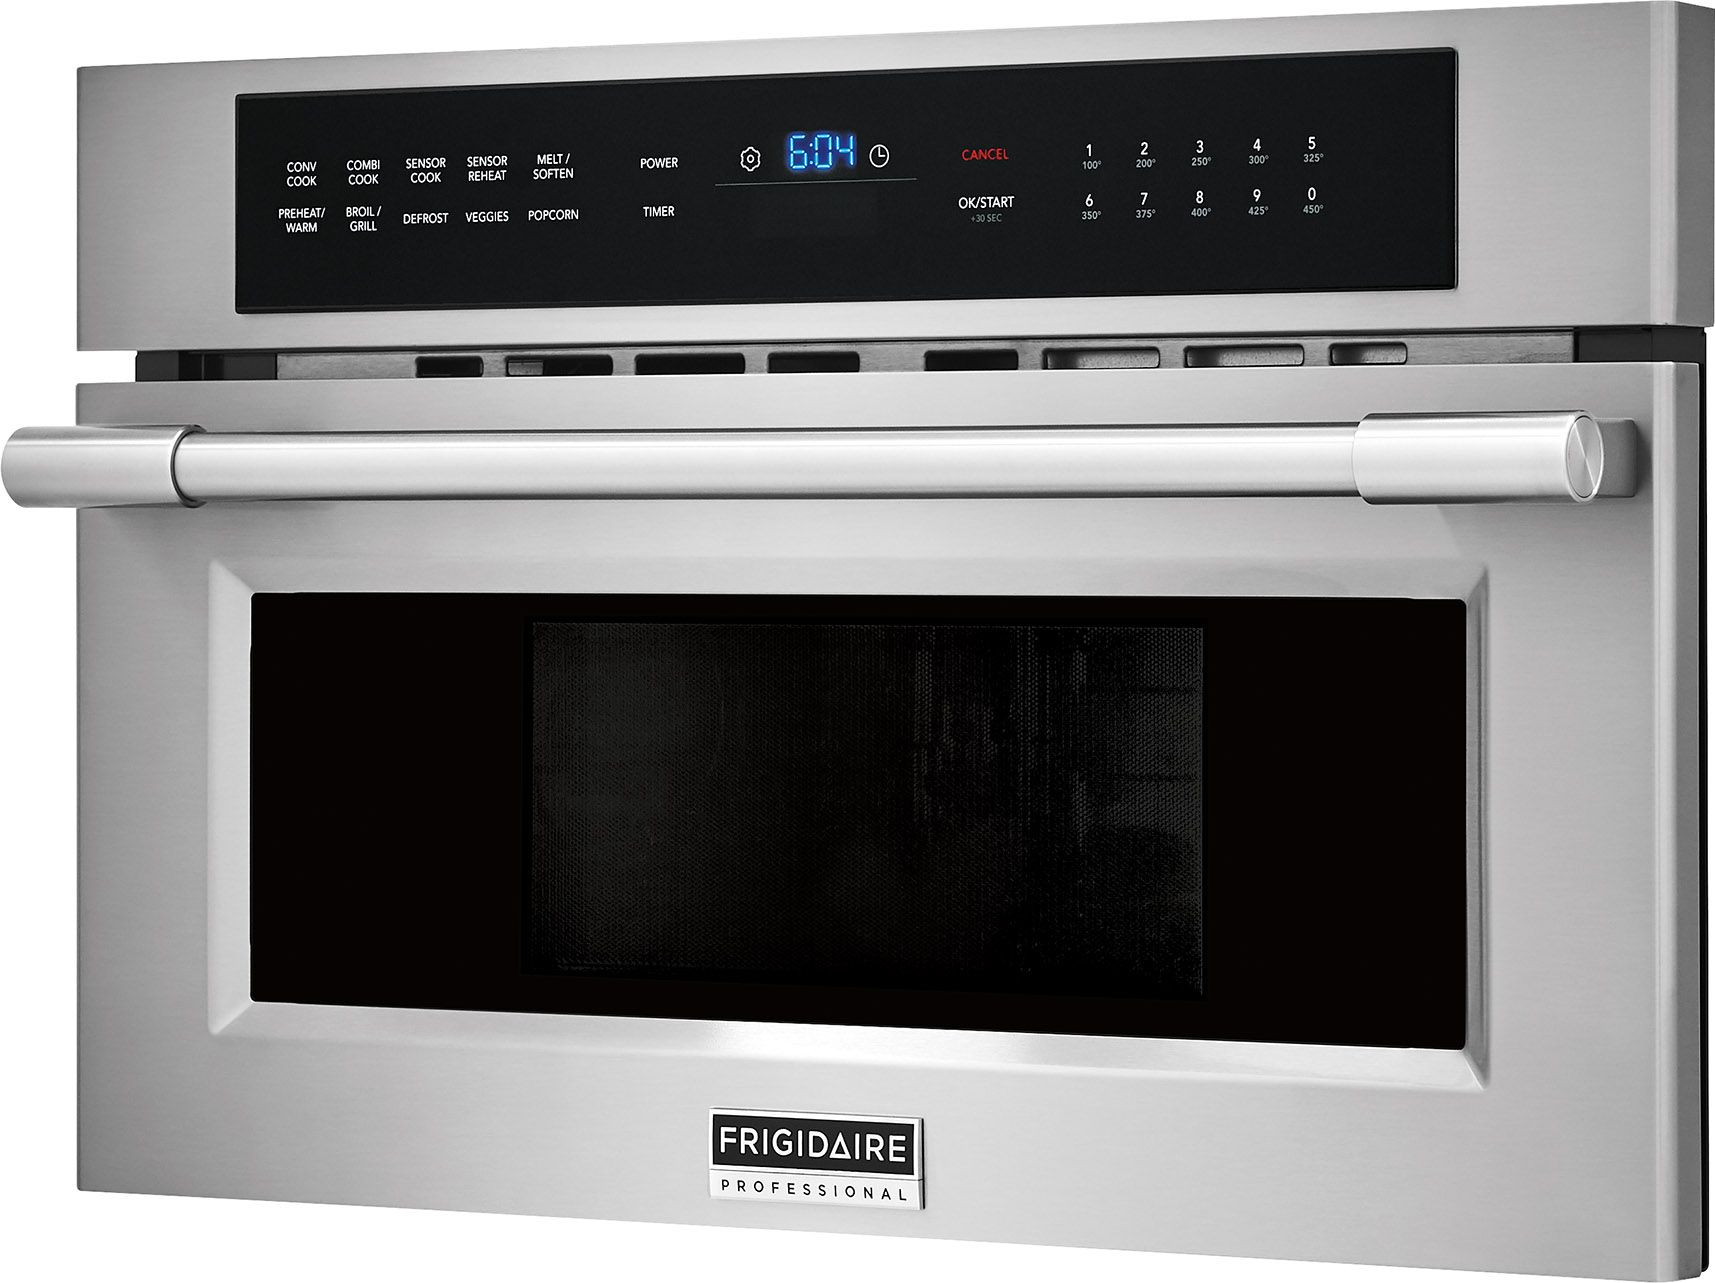 Frigidaire Professional® Built In Microwave-Stainless Steel-FPMO3077TF